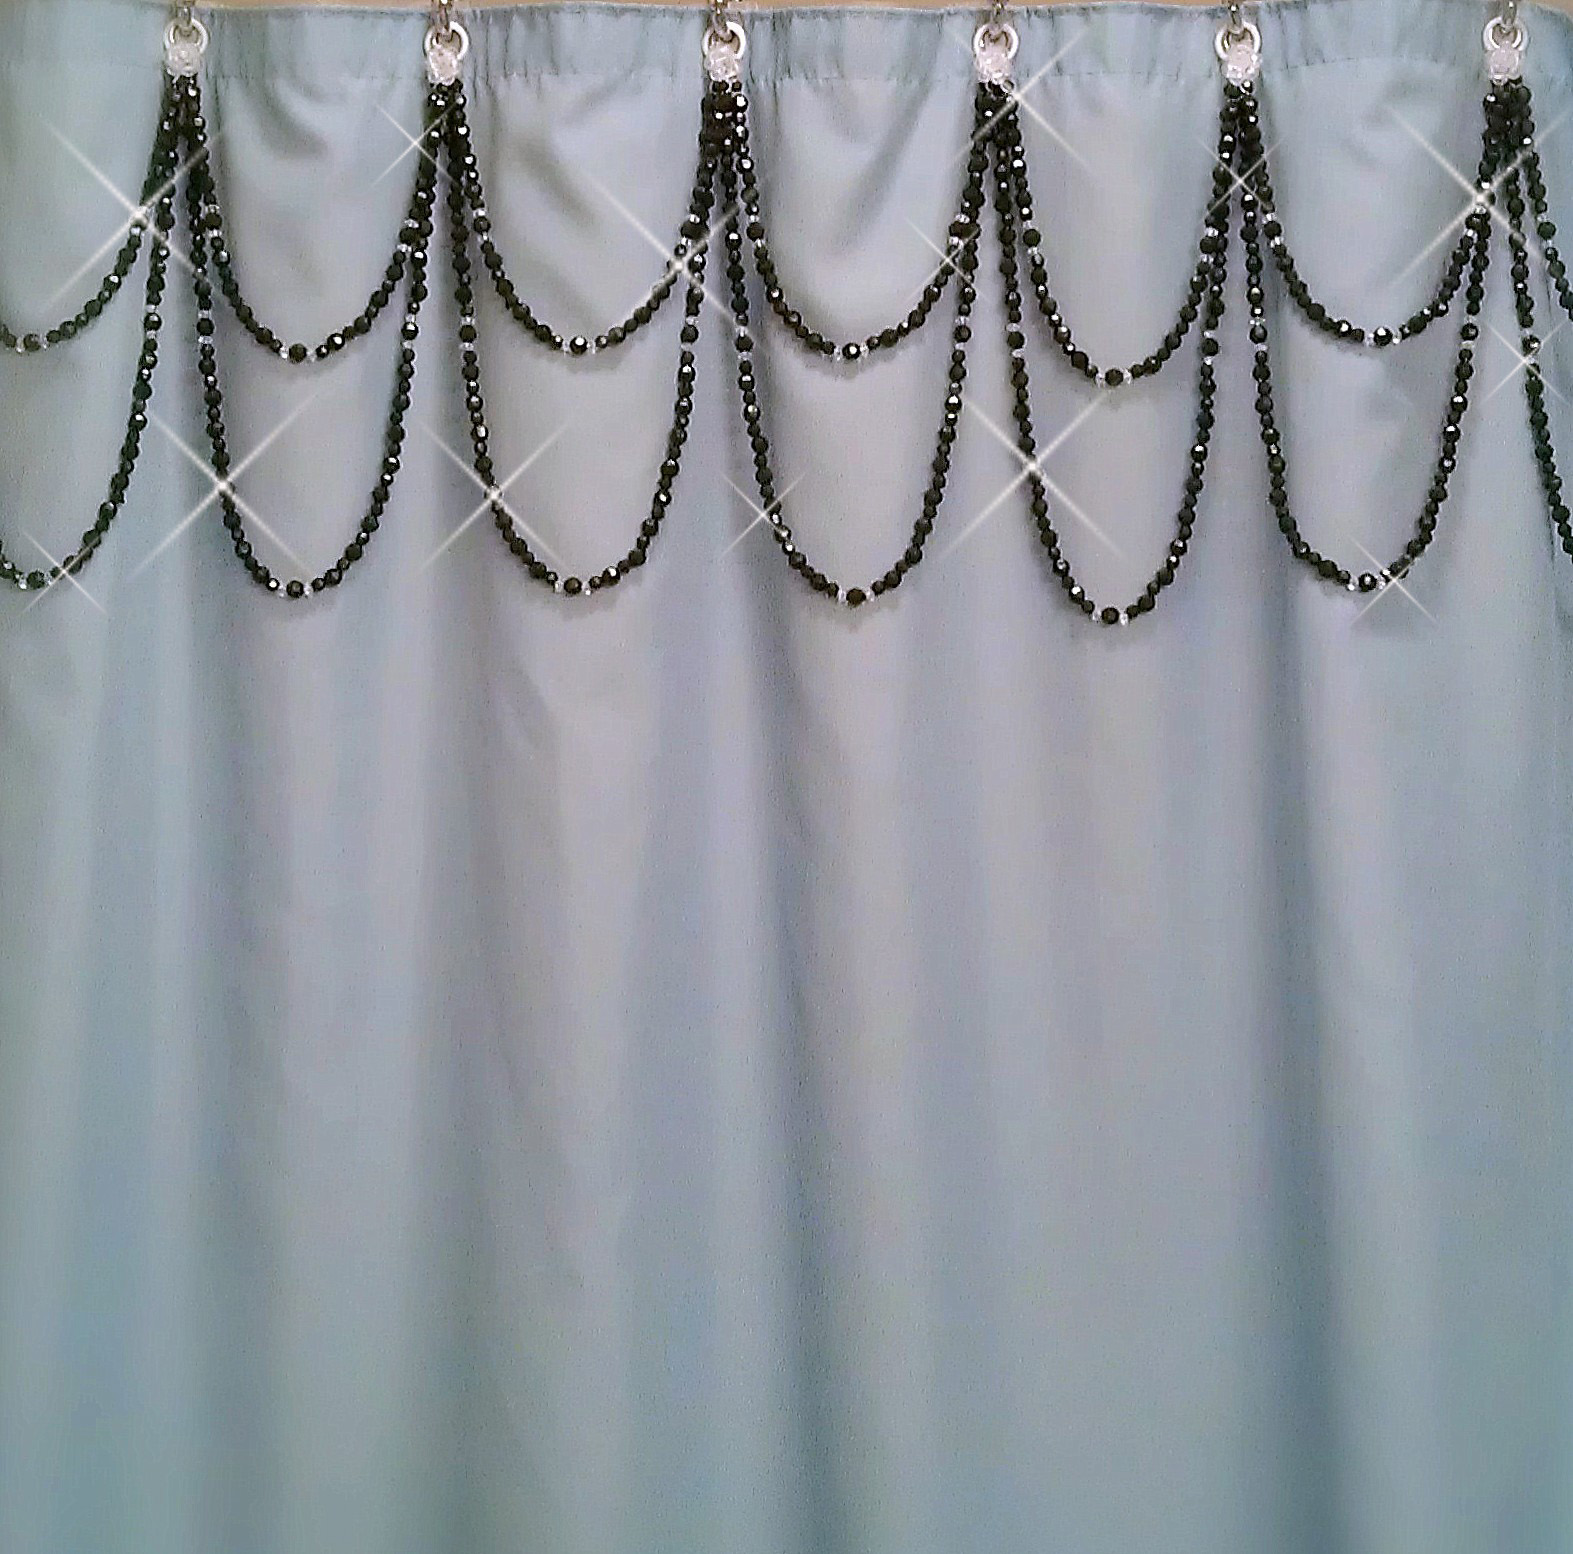 shadez of michelle shower curtain bling black and crystal